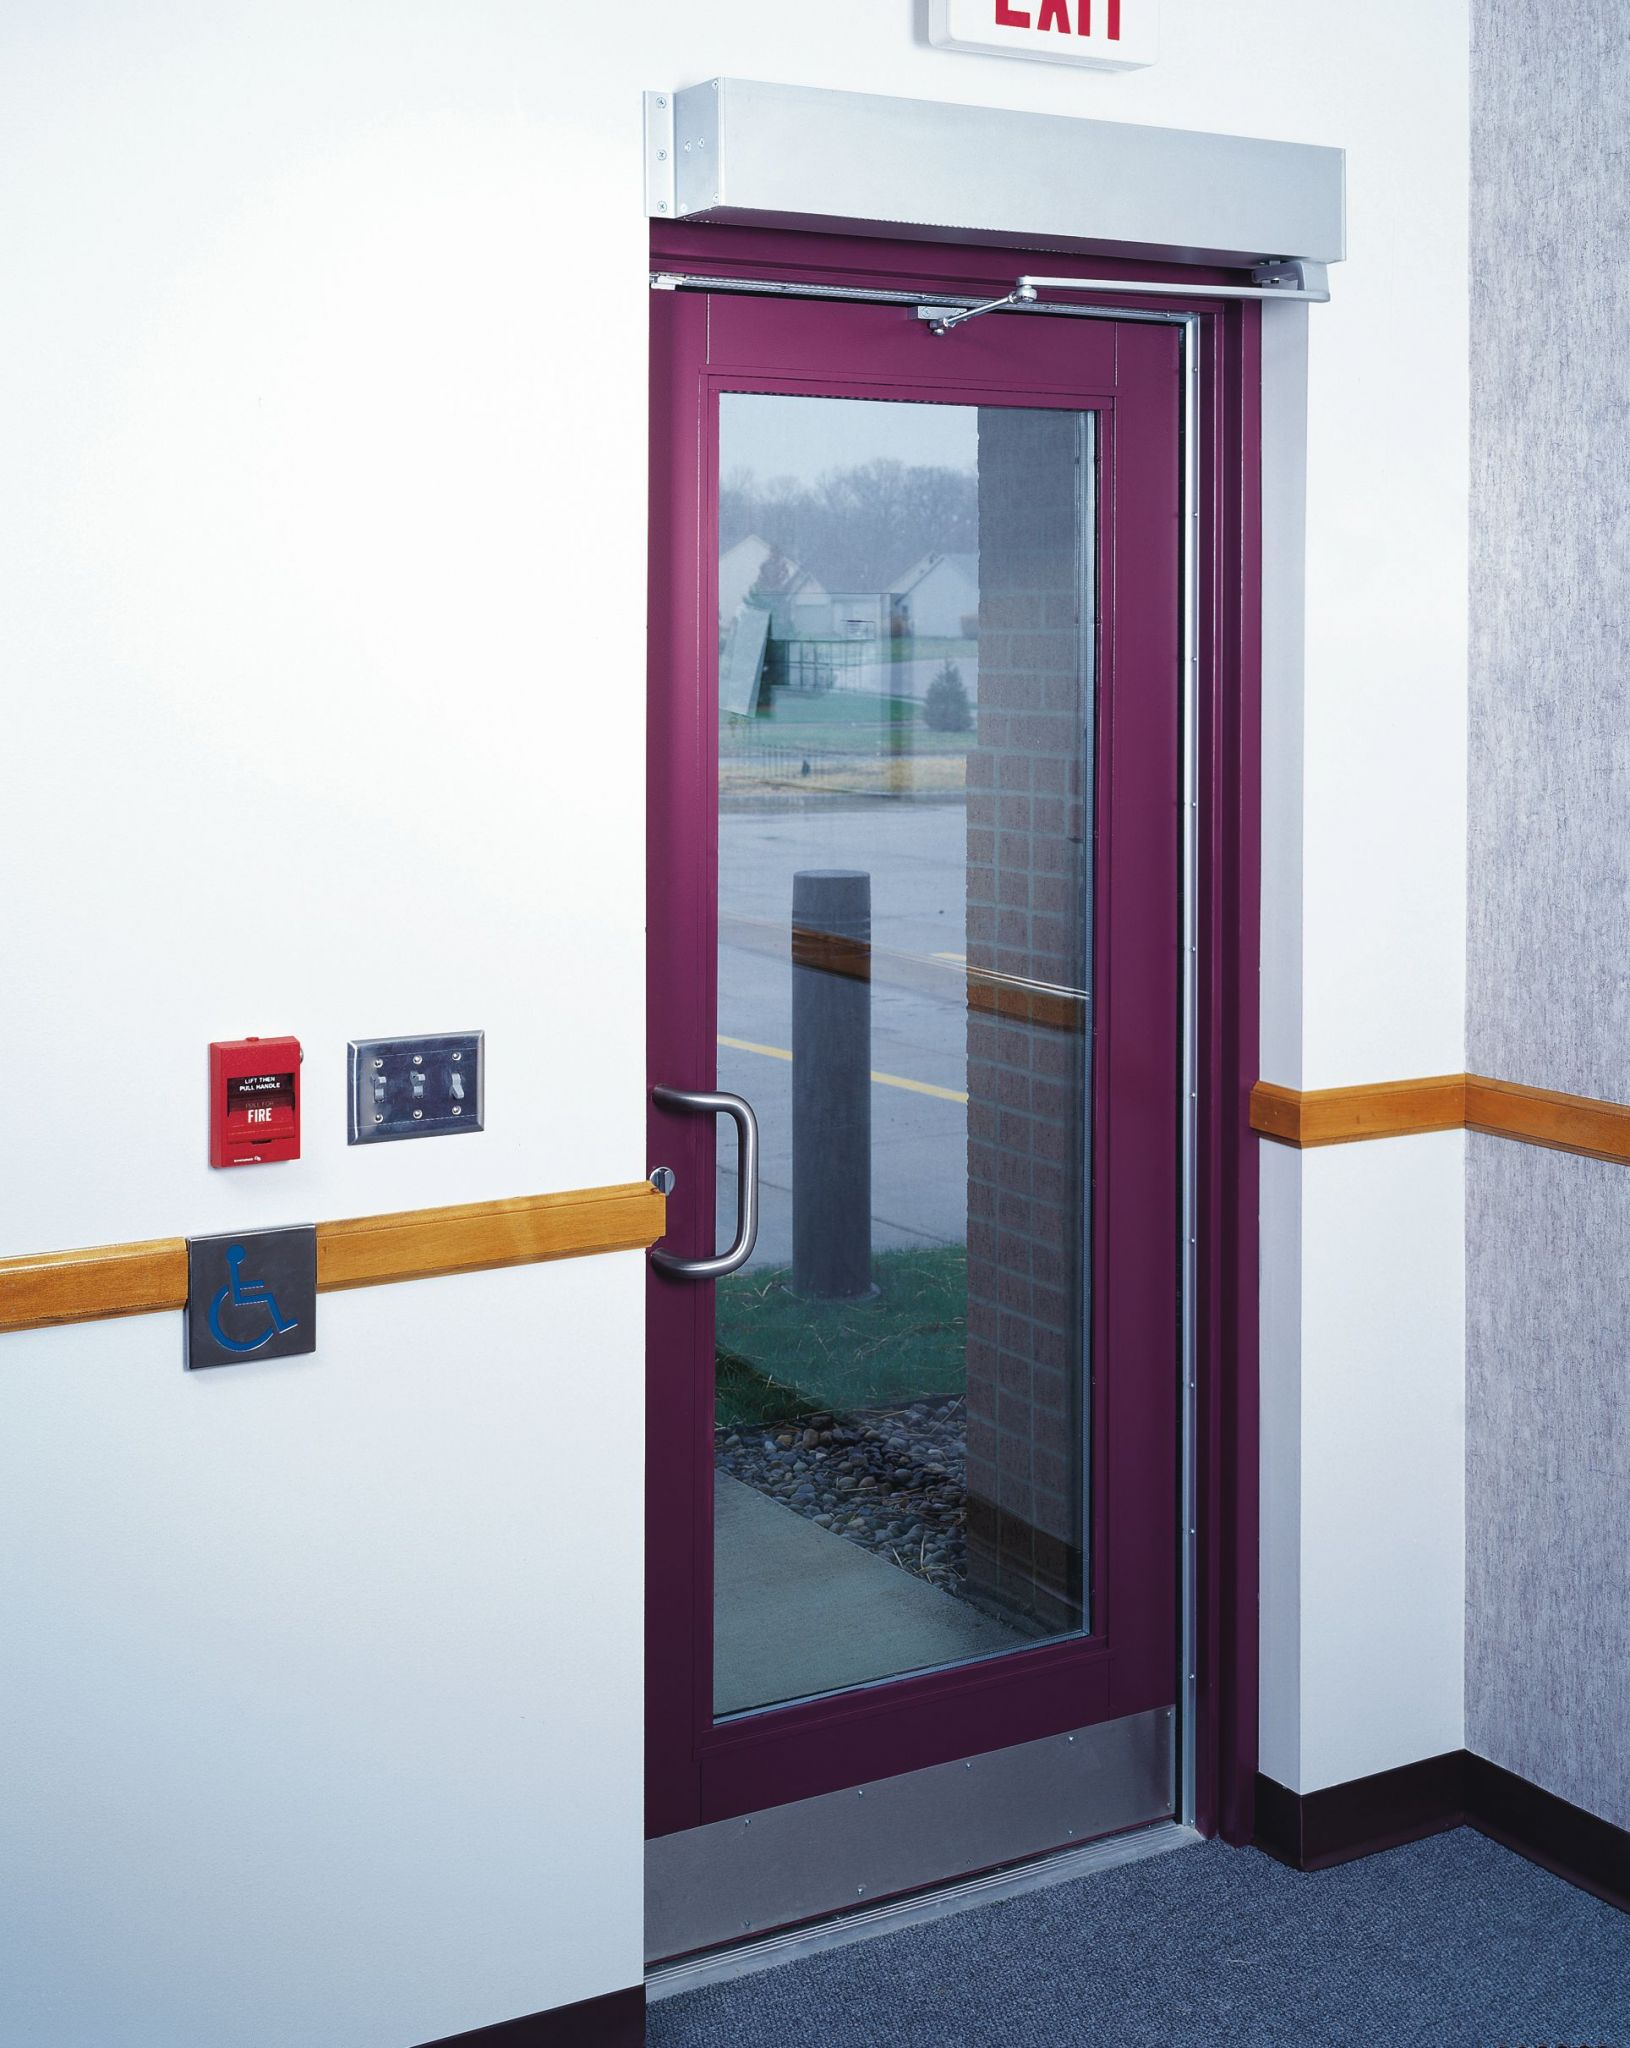 Understanding New Accessibility Requirements For Doors How To Wire Push Button Switch 15 A Low Energy Automatic Operator Must Be Actuated By Knowing Act Eg This Wall Mounted Or Comply With The Of Builders